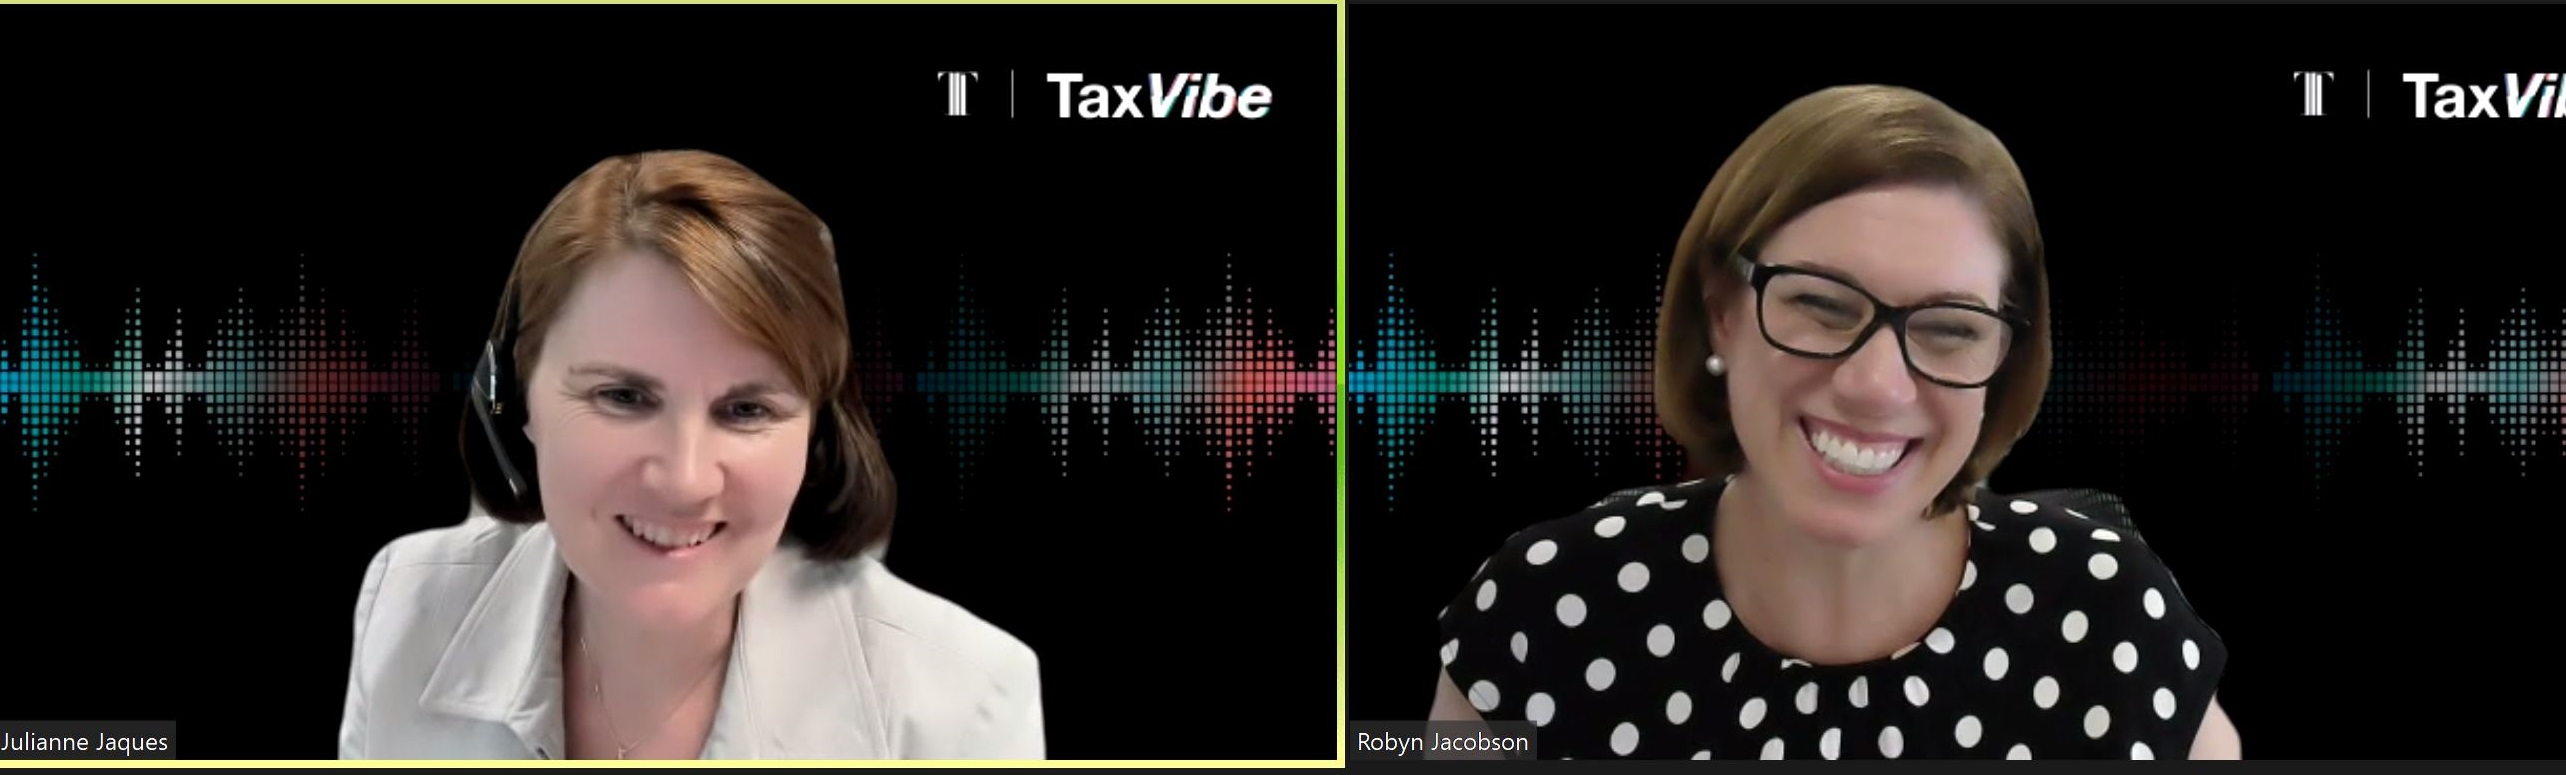 Julianne Jaques and Robyn Jacobson - TaxVibe